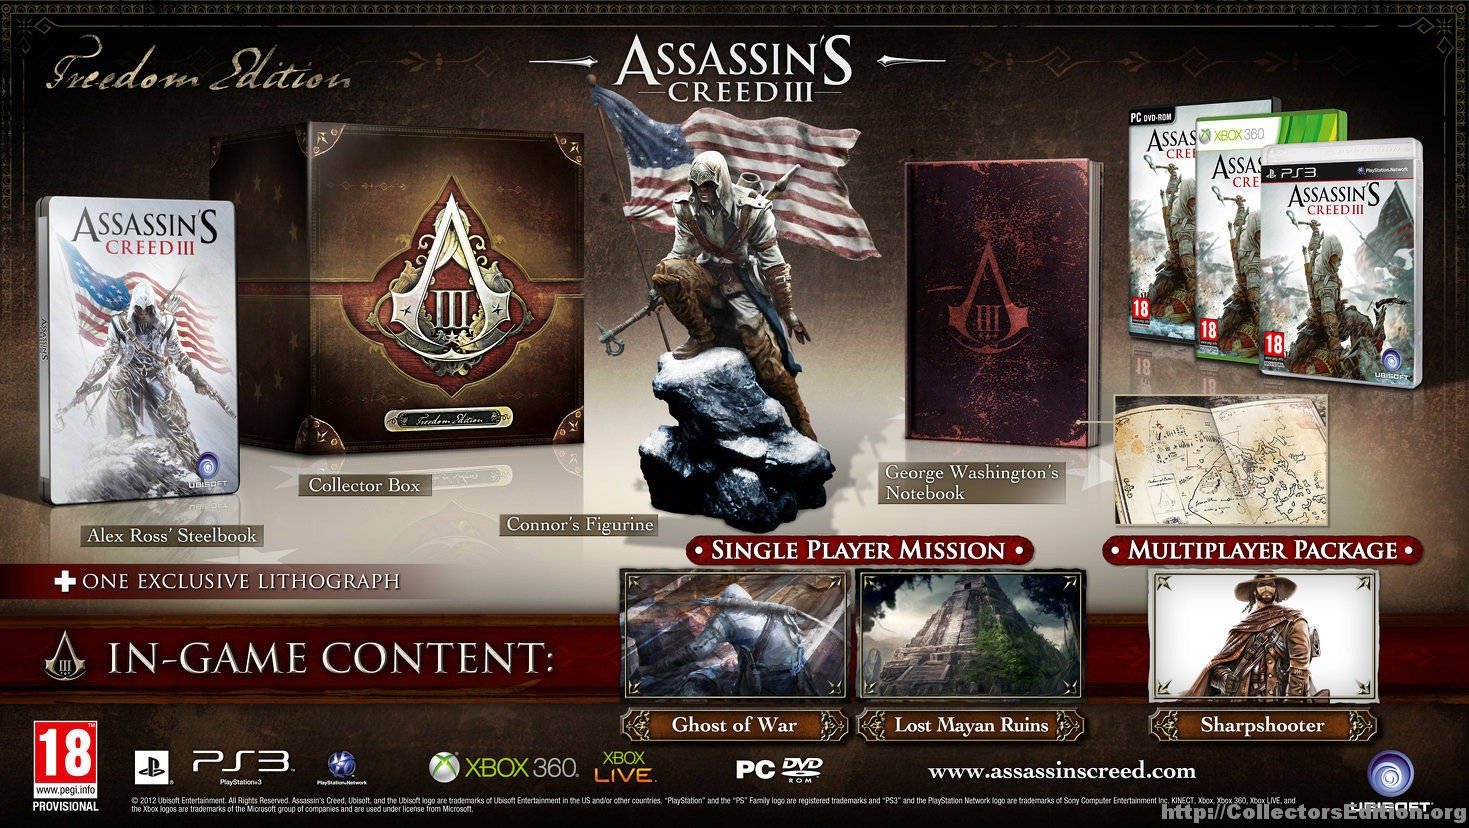 Assassin's creed 3 deluxe edition dlc-sc free download.